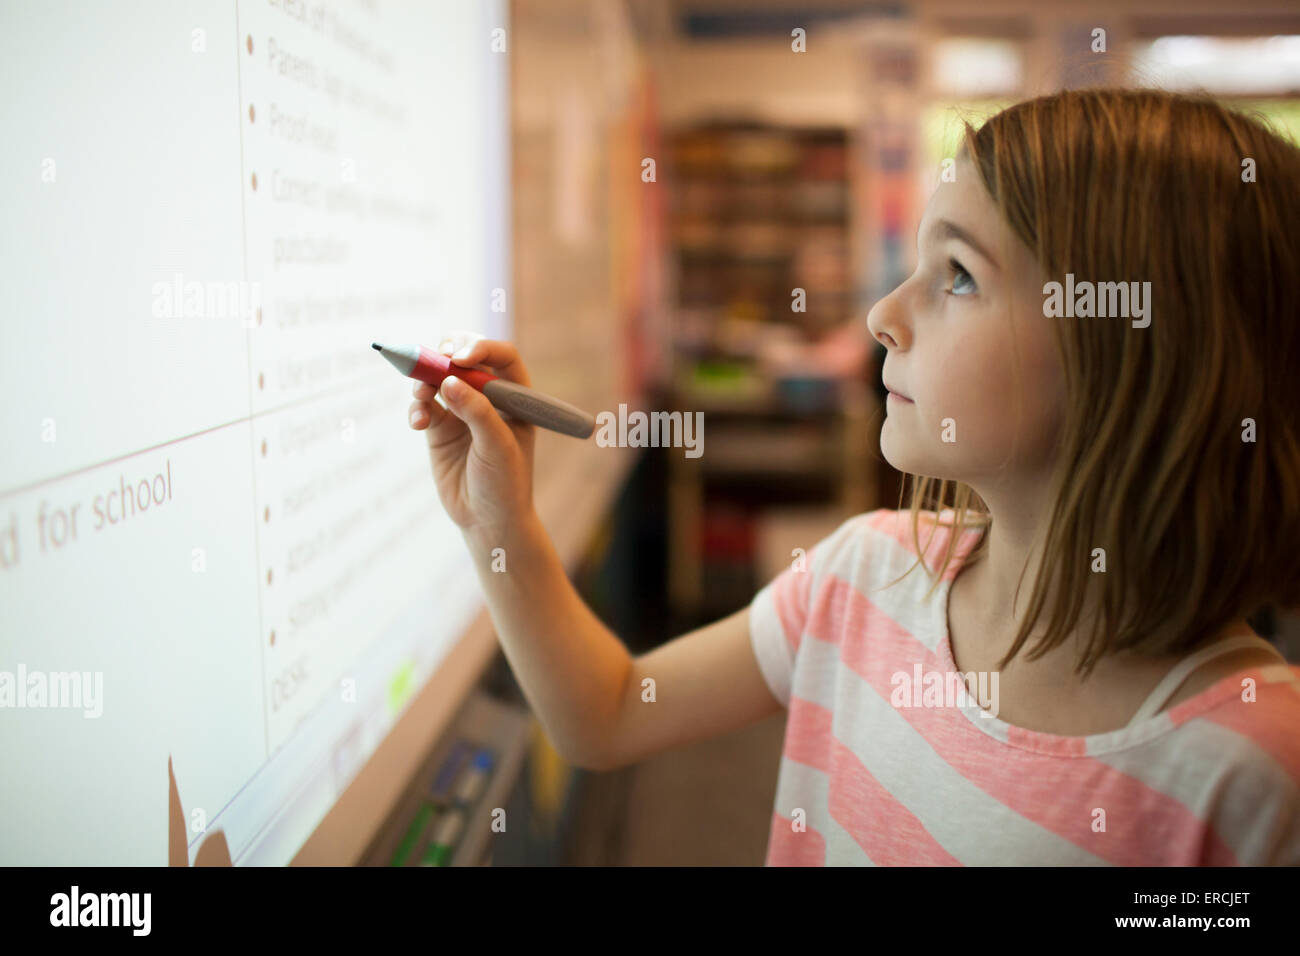 A young girl writting on a SMART Board - Stock Image